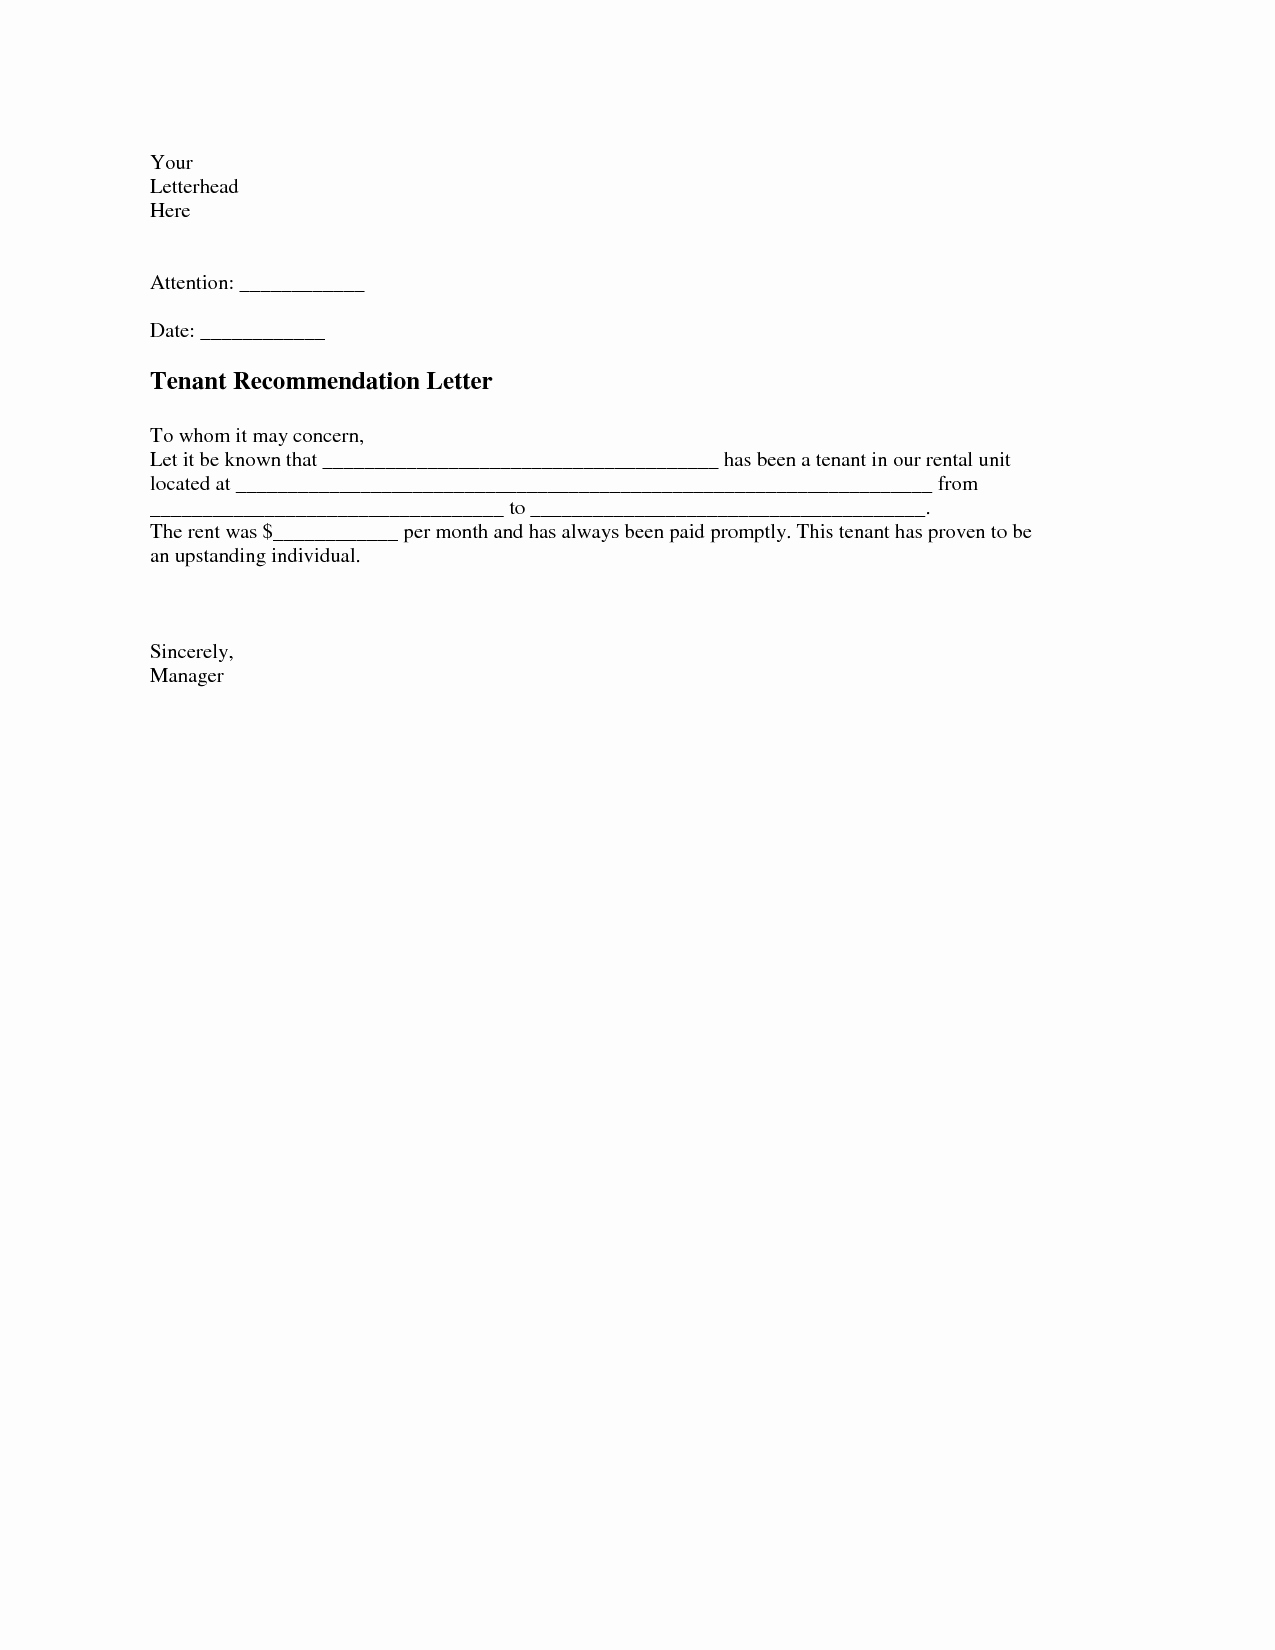 Landlord Letter Of Recommendation Best Of Tenant Re Mendation Letter A Tenant Re Mendation